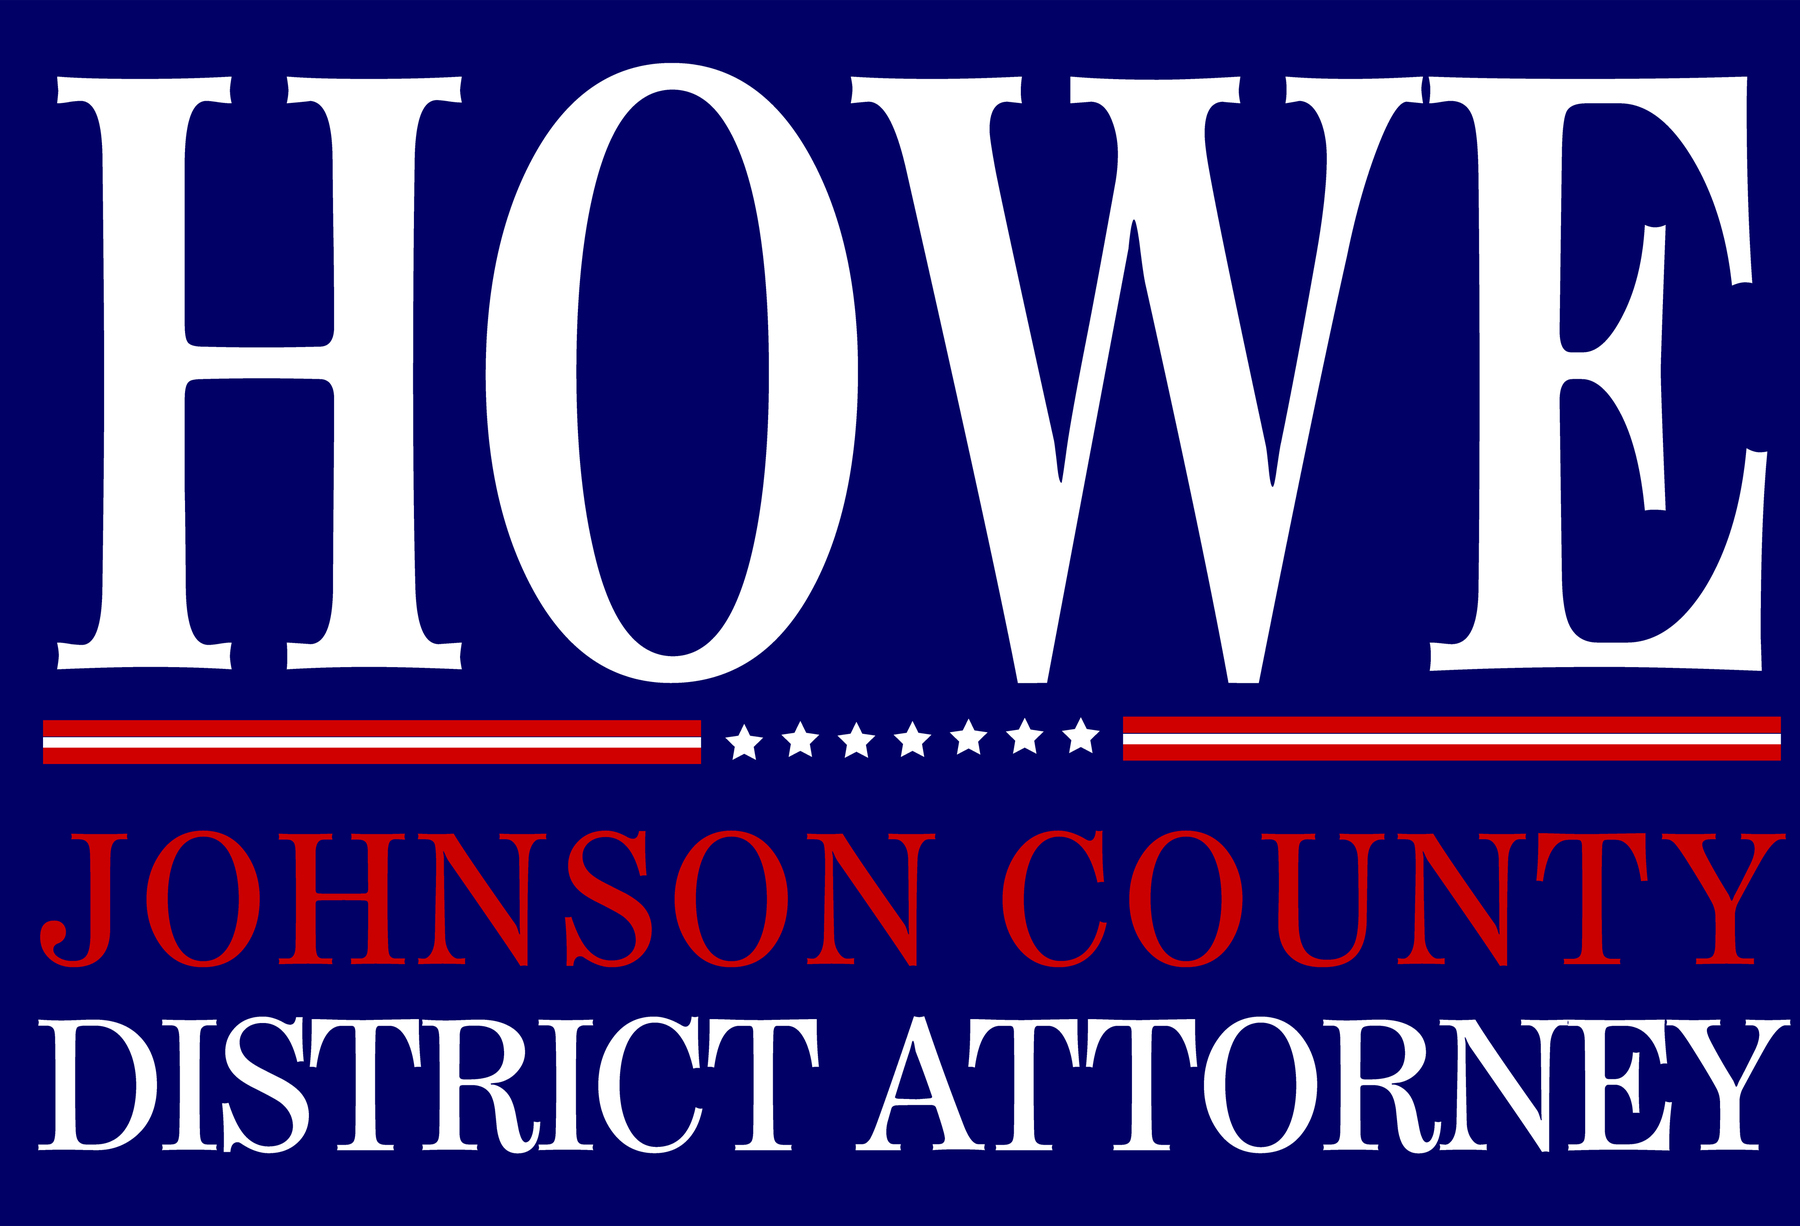 Steve Howe for District Attorney: General Fund